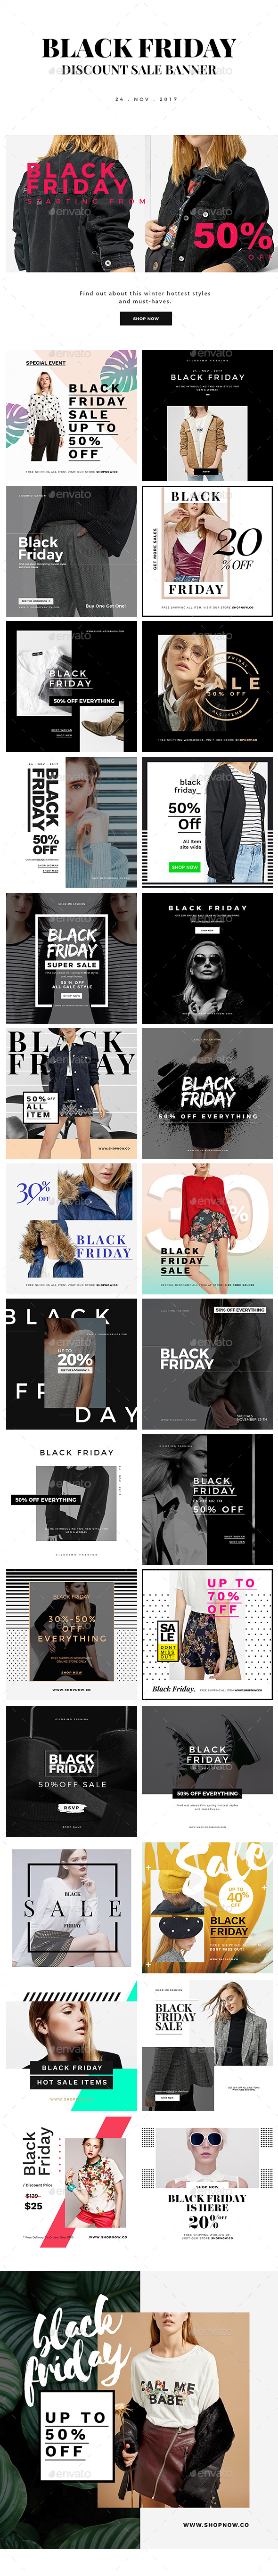 Black Friday Discount Sale Instagram Banner - Social Media Web Elements